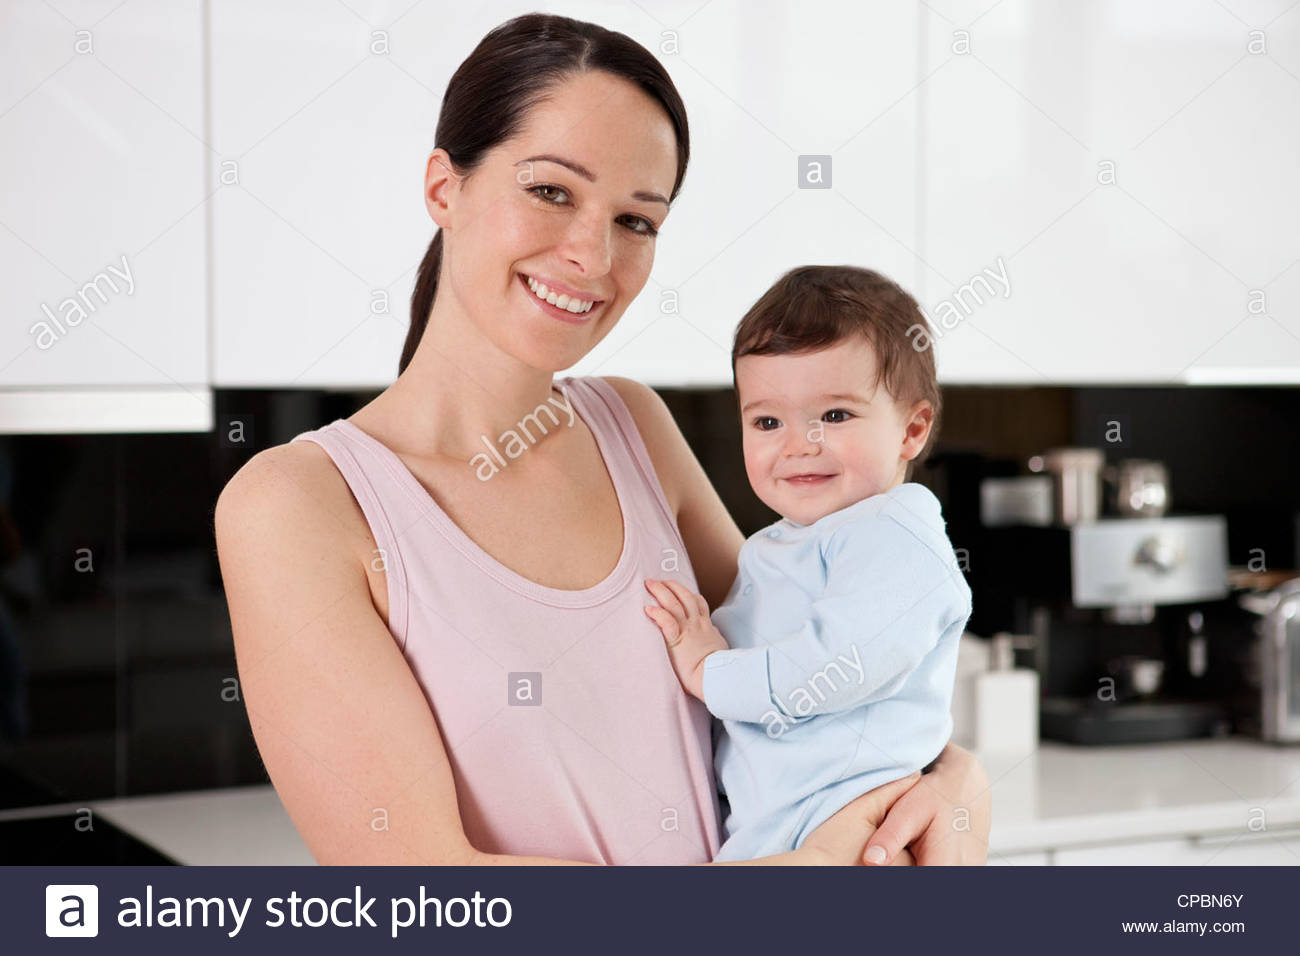 A young mother standing in a kitchen holding her baby son - Stock Image